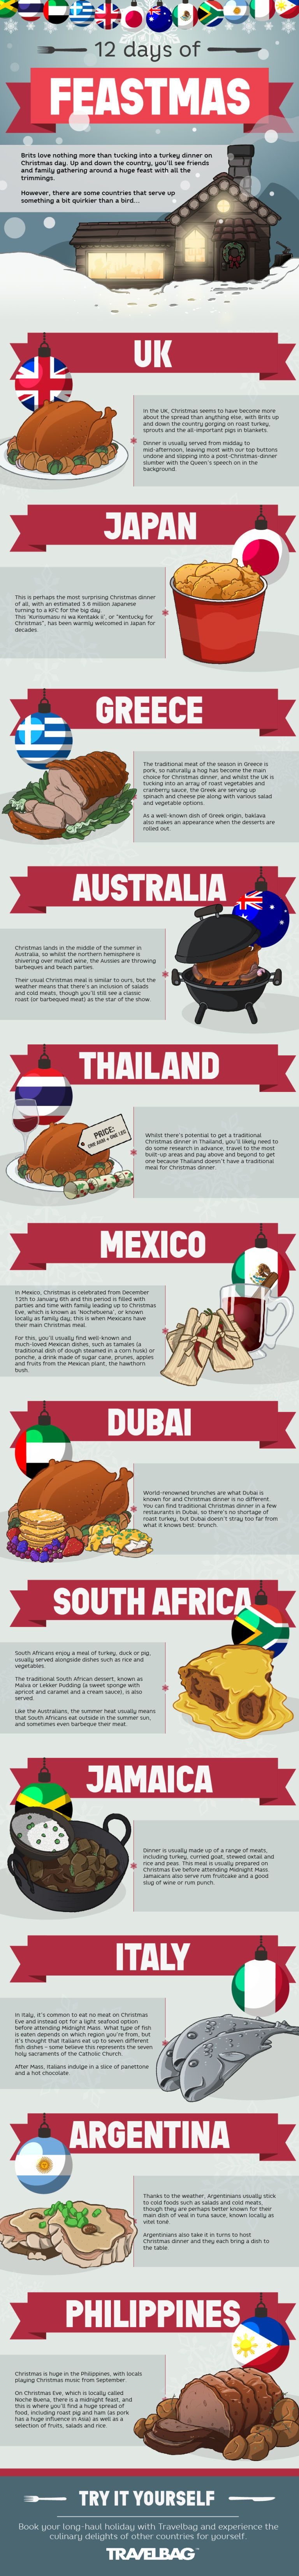 Christmas Dinner Traditions Around the World